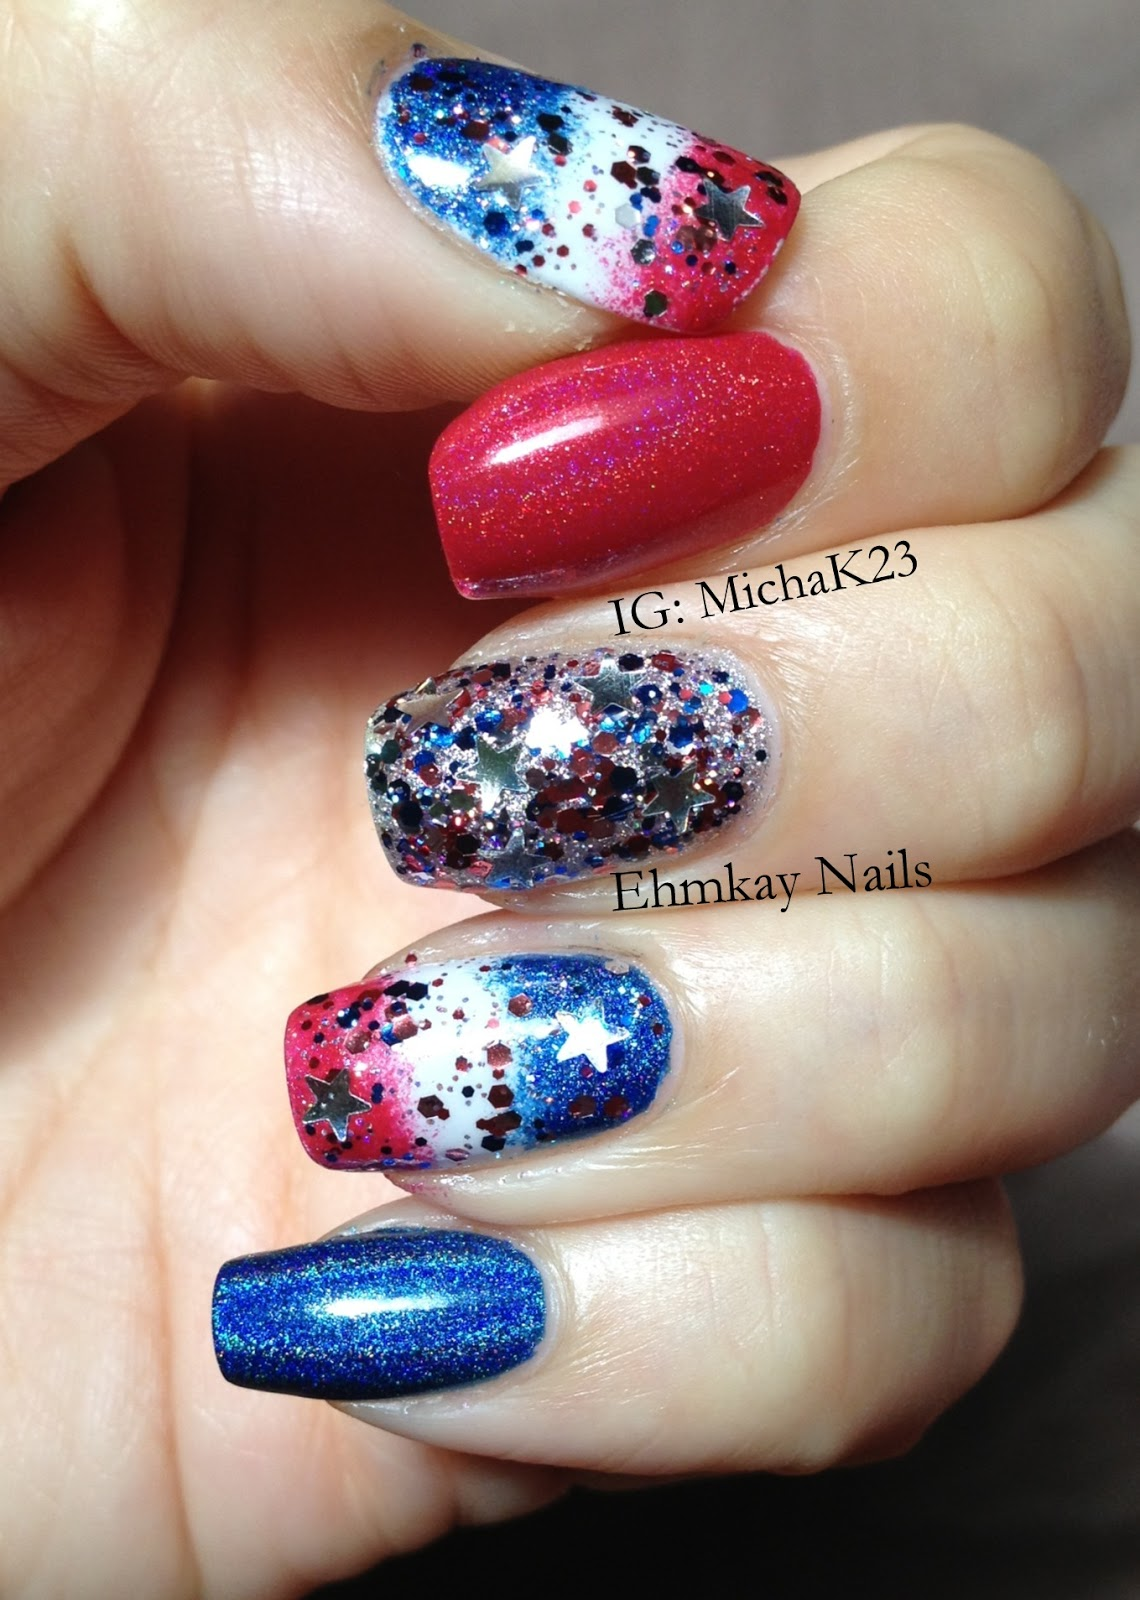 ehmkay nails: Happy Fourth of July! Quick Patriotic Nail Art